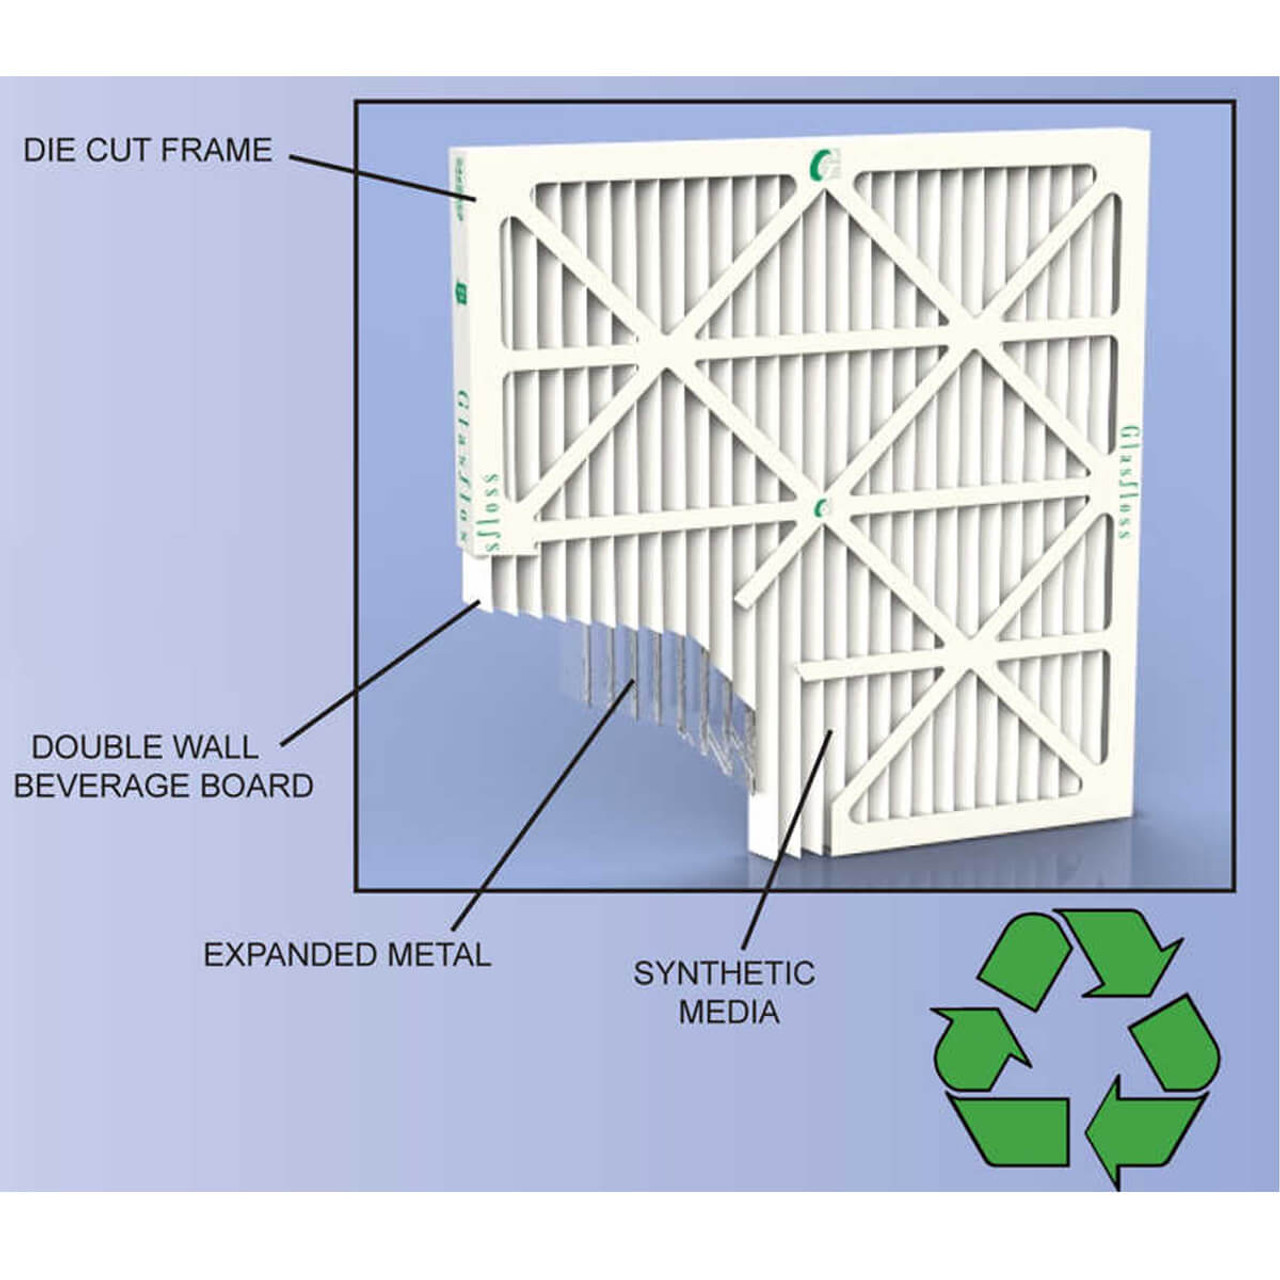 Furnace Air Filter - AC or HVAC Pleated Air Filter Made In The USA For Home or Office Pack of 4 Glasfloss 14x20x2-2 Inch MERV 13 -